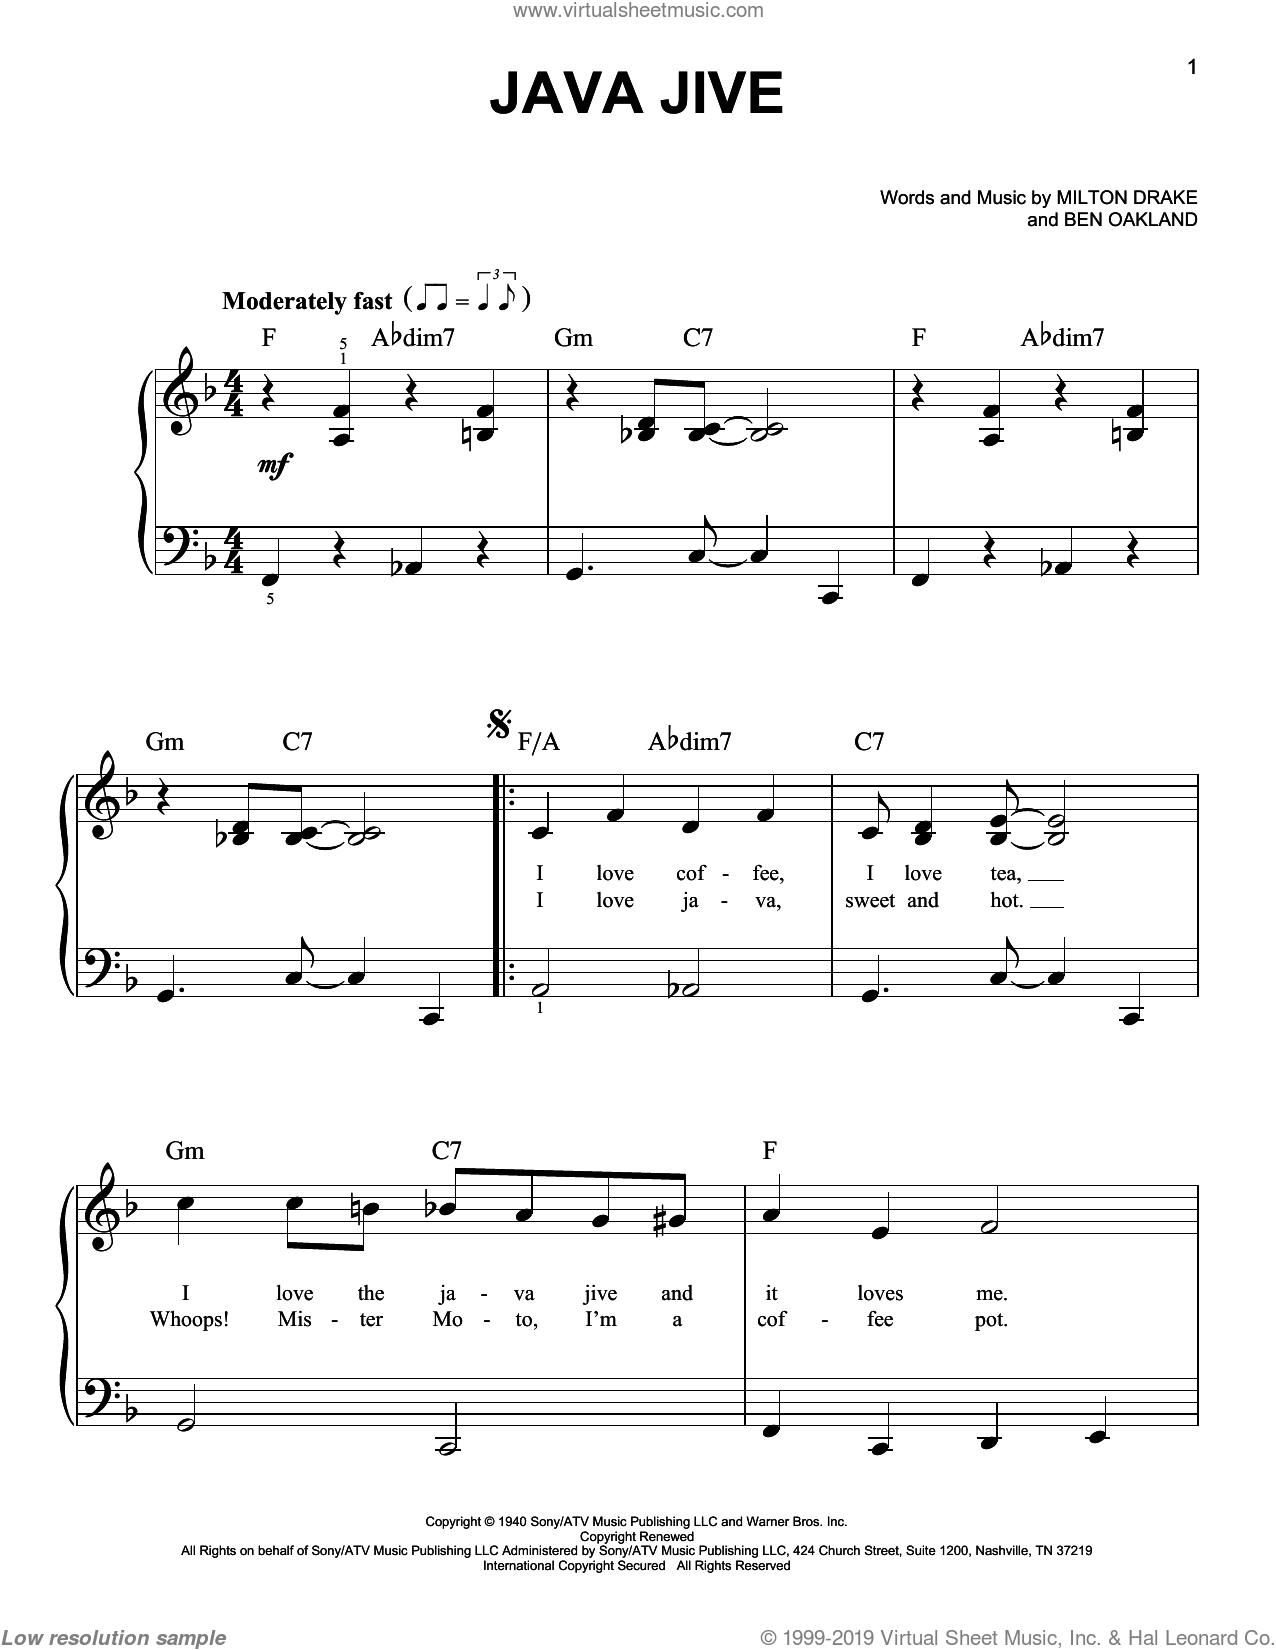 Java Jive sheet music for piano solo by The Ink Spots, Ben Oakland and Milton Drake, easy skill level